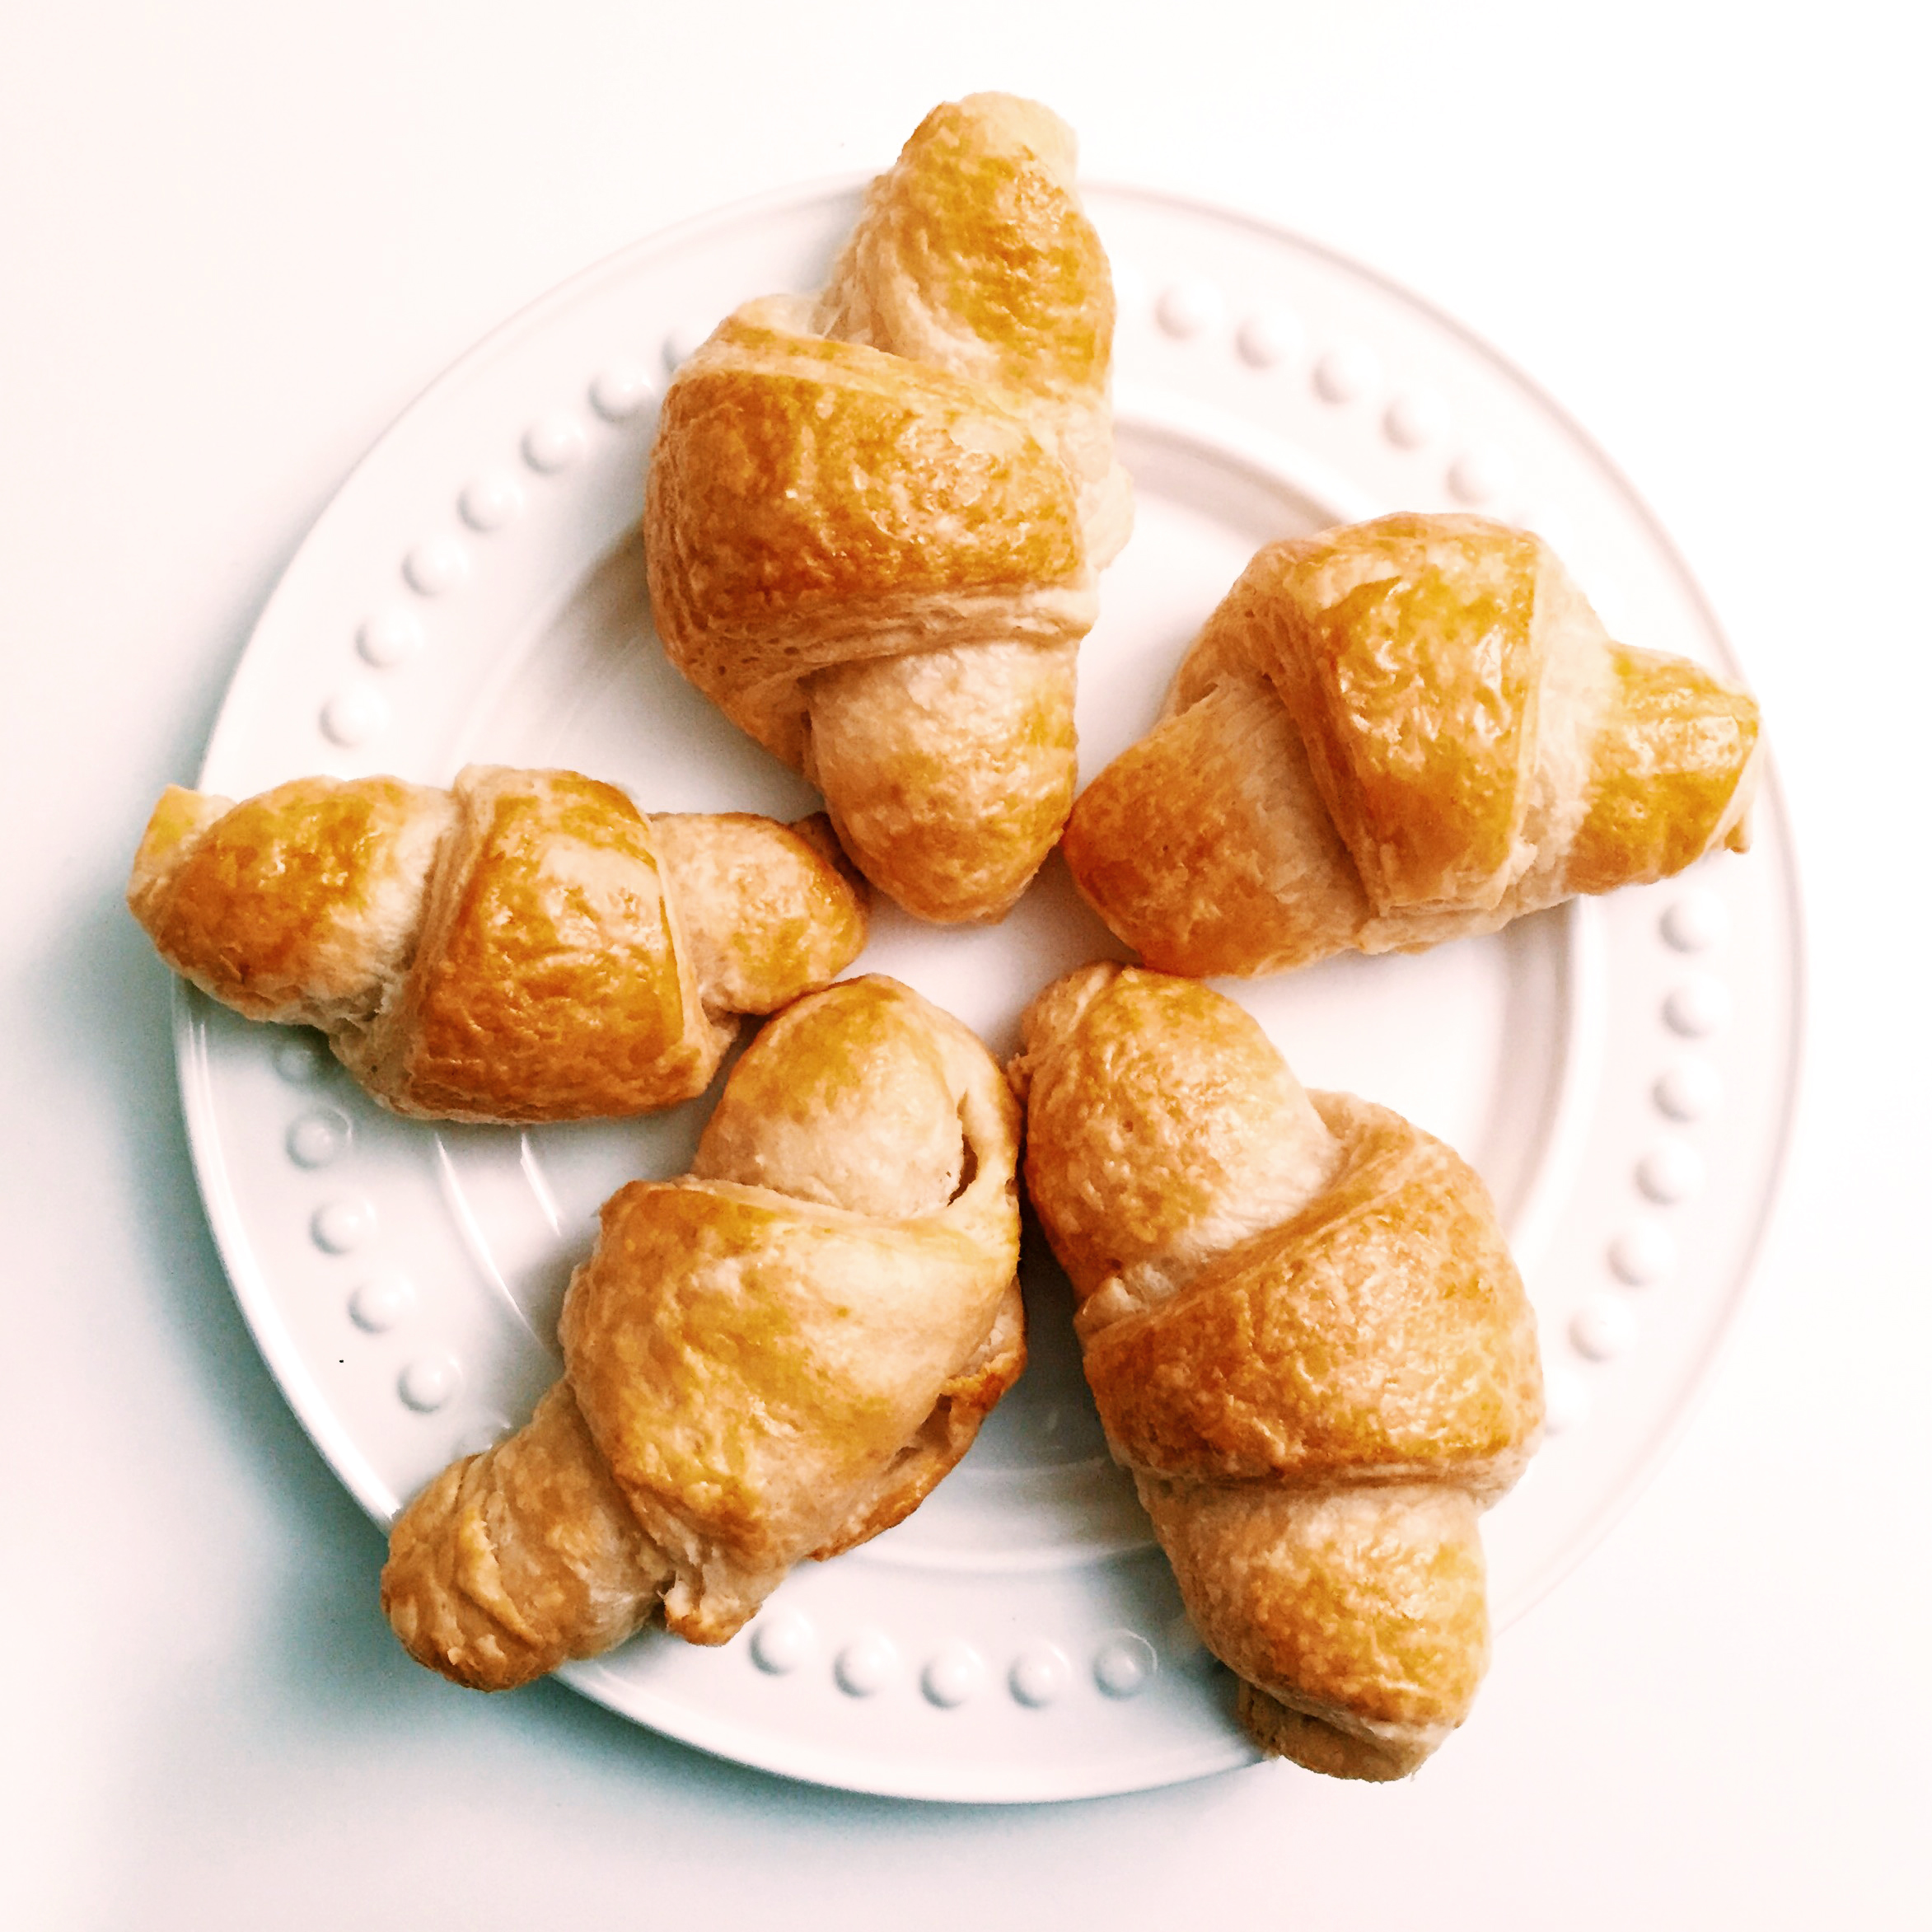 Flakey, buttery, delicious homemade croissants! :)